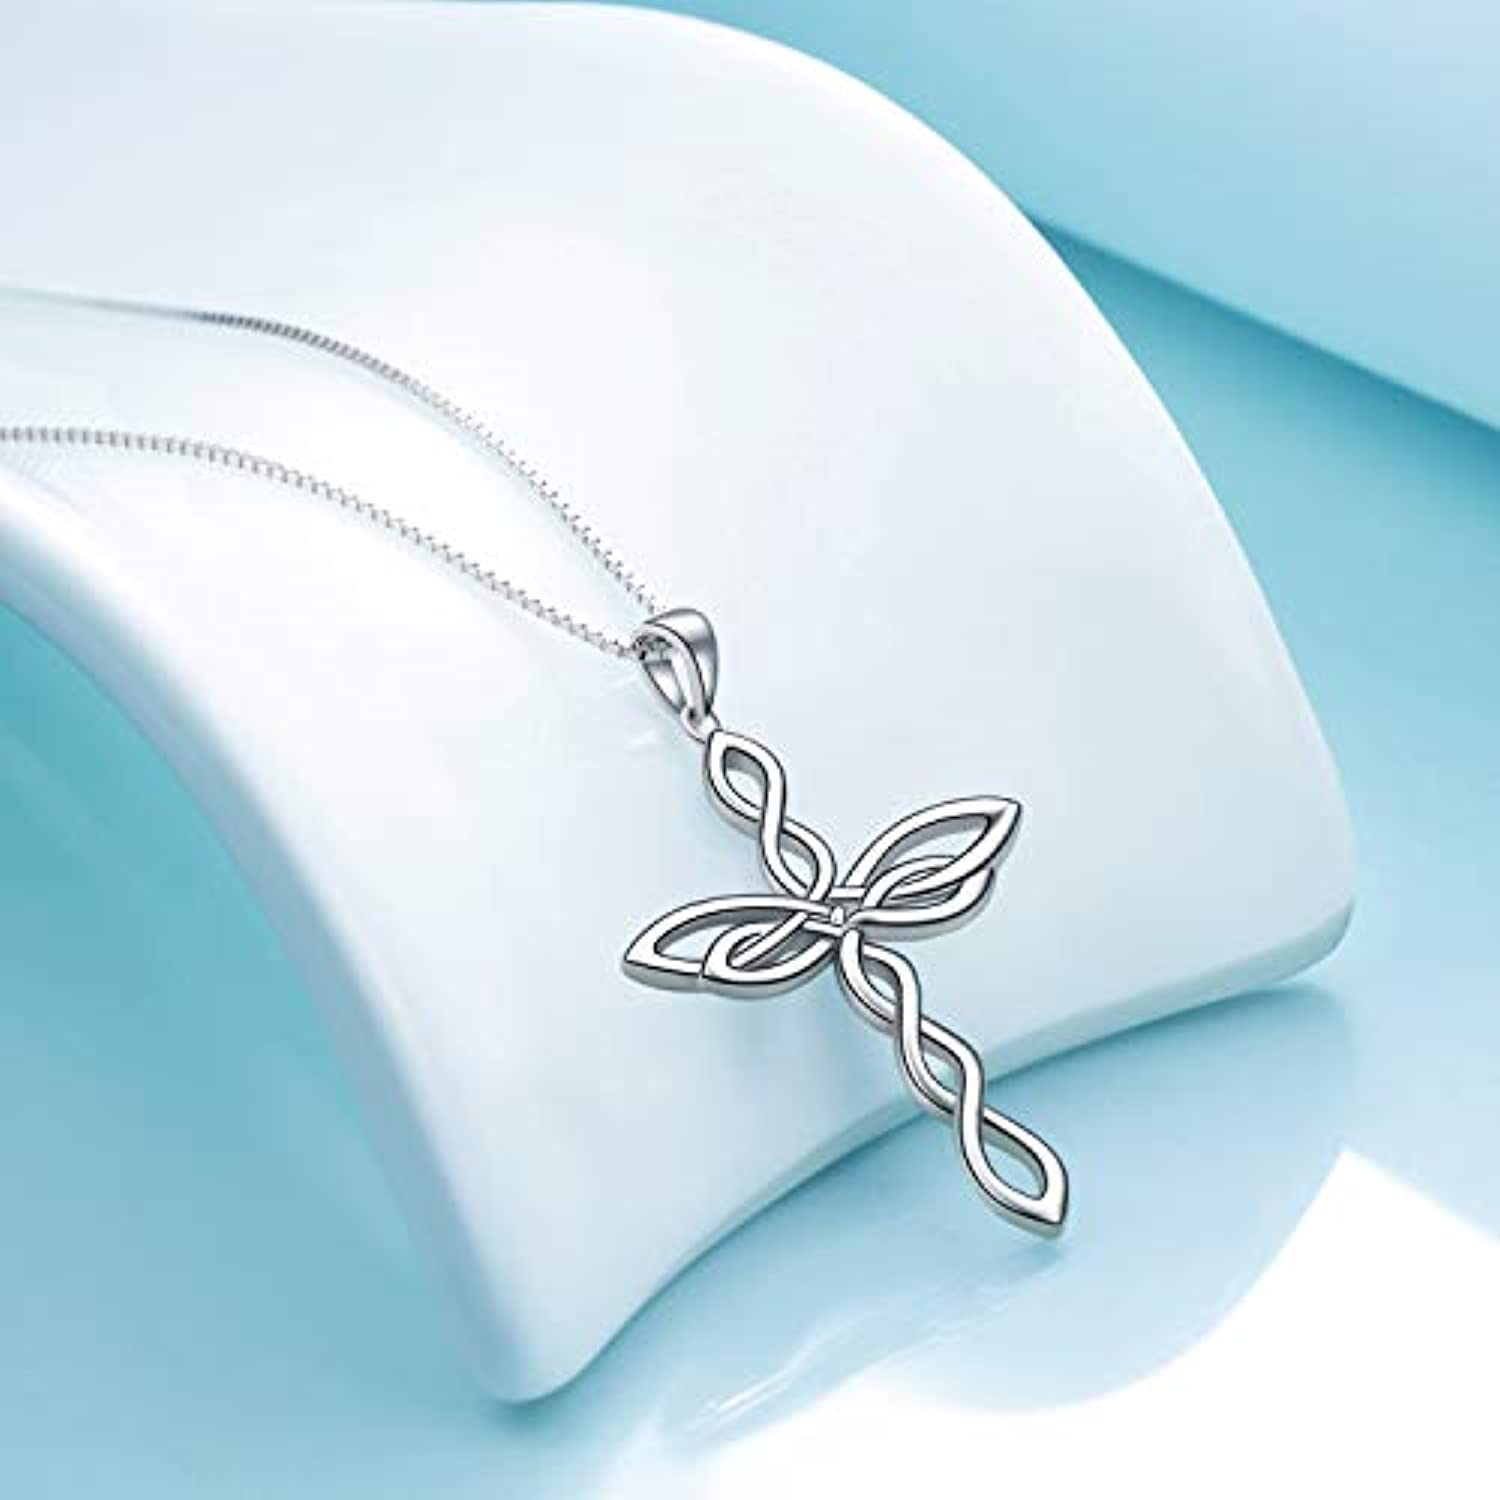 Celtic Knot Cross Necklace 925 Sterling Silver Polished Religious Infinity Love Irish Celtics jewelry for Women Girls